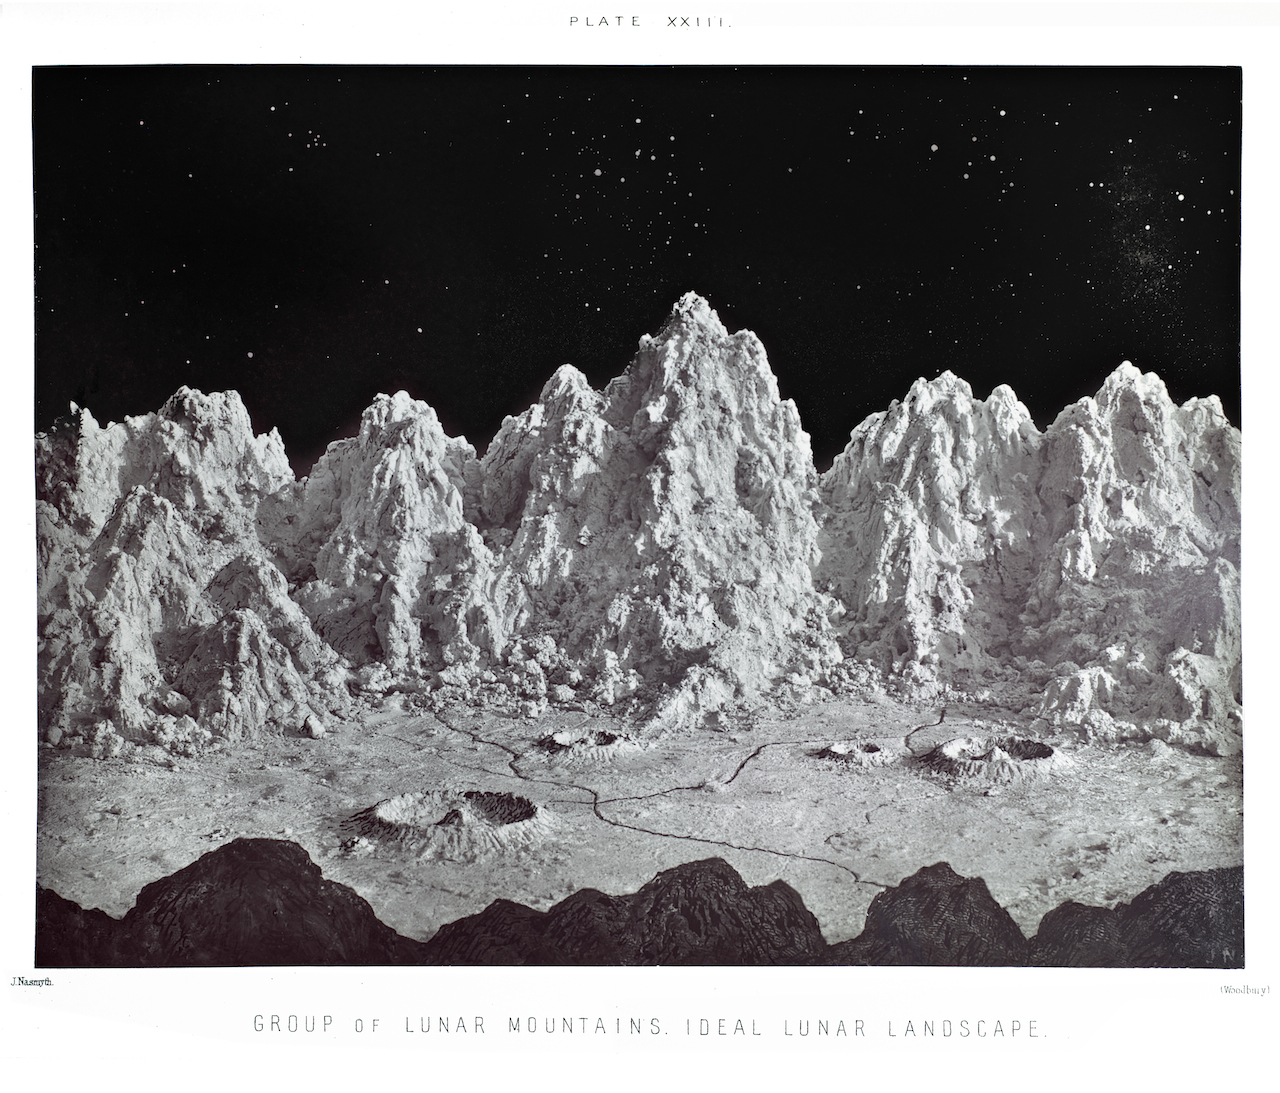 1874 depiction of lunar mountains, from a book by Nasmyth and Carpenter. (Courtesy the Wolbach Library, Harvard)